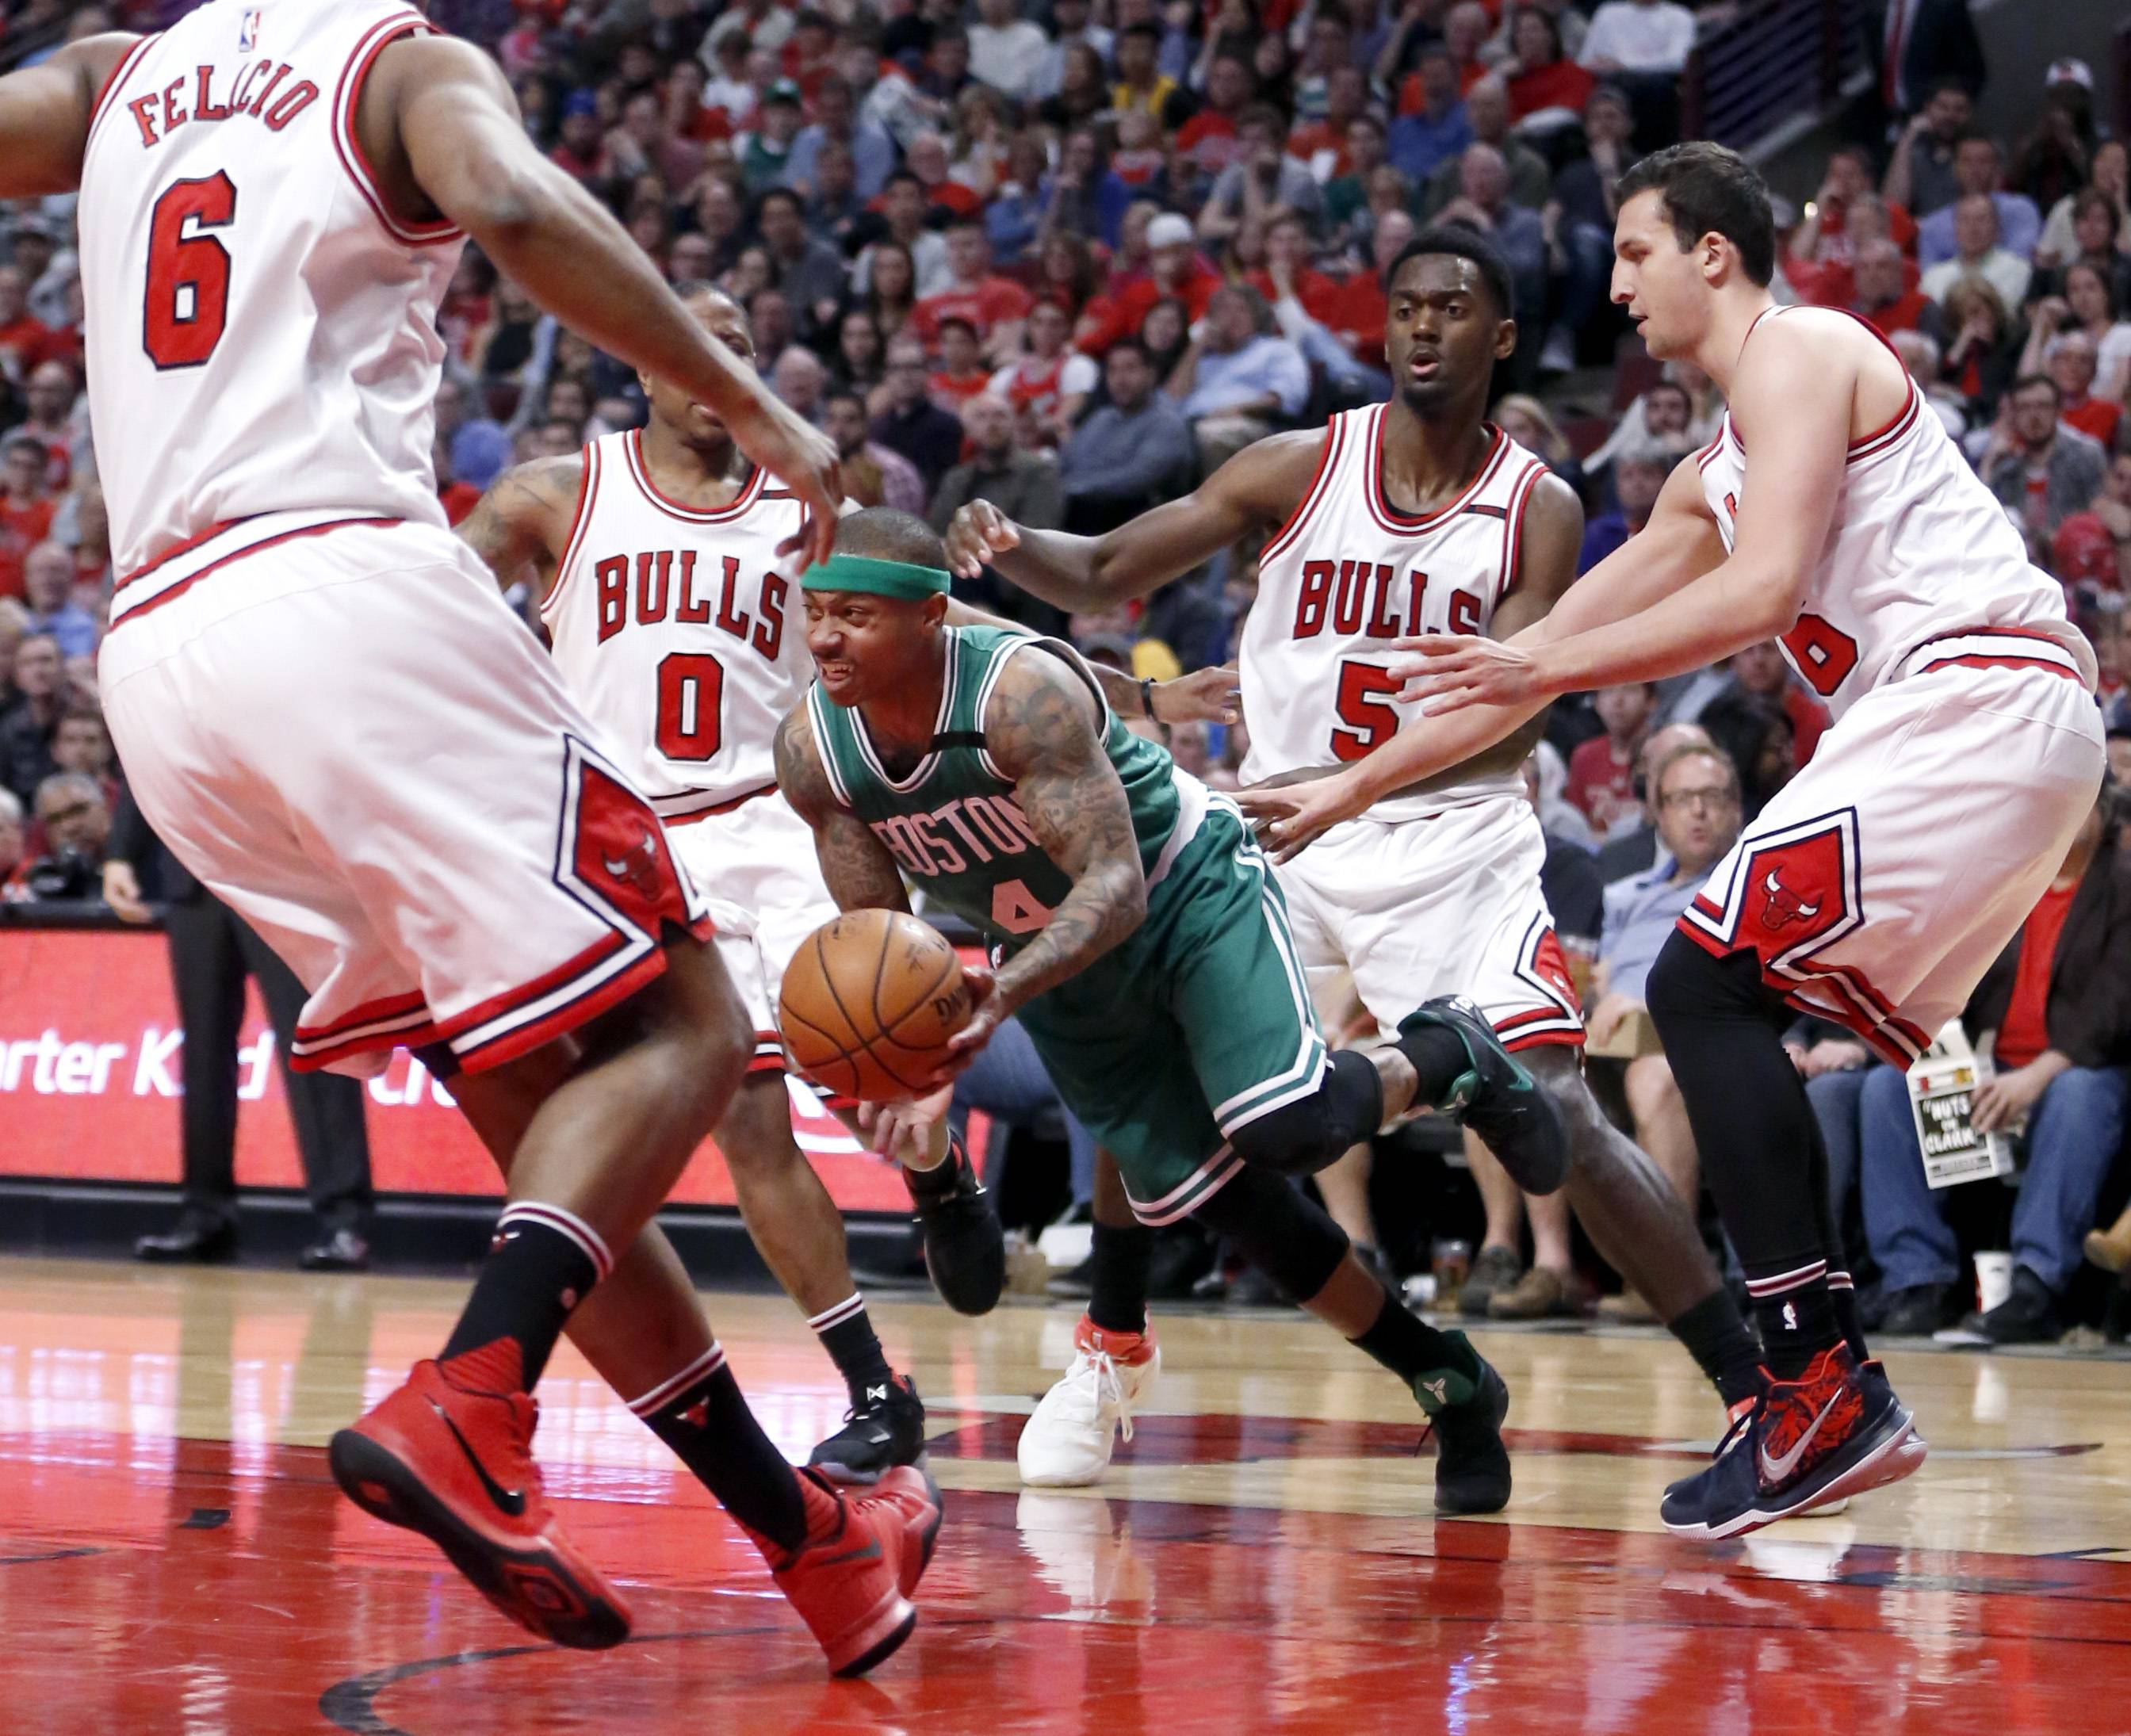 Boston Celtics' Isaiah Thomas (4) dribbles through the Chicago Bulls defense of Cristiano Felicio (6) Isaiah Canaan (0) Bobby Portis (5) and Paul Zipser during the first half in Game 4 of an NBA basketball first-round playoff series in Chicago, Sunday, April 23, 2017. (AP Photo/Charles Rex Arbogast)